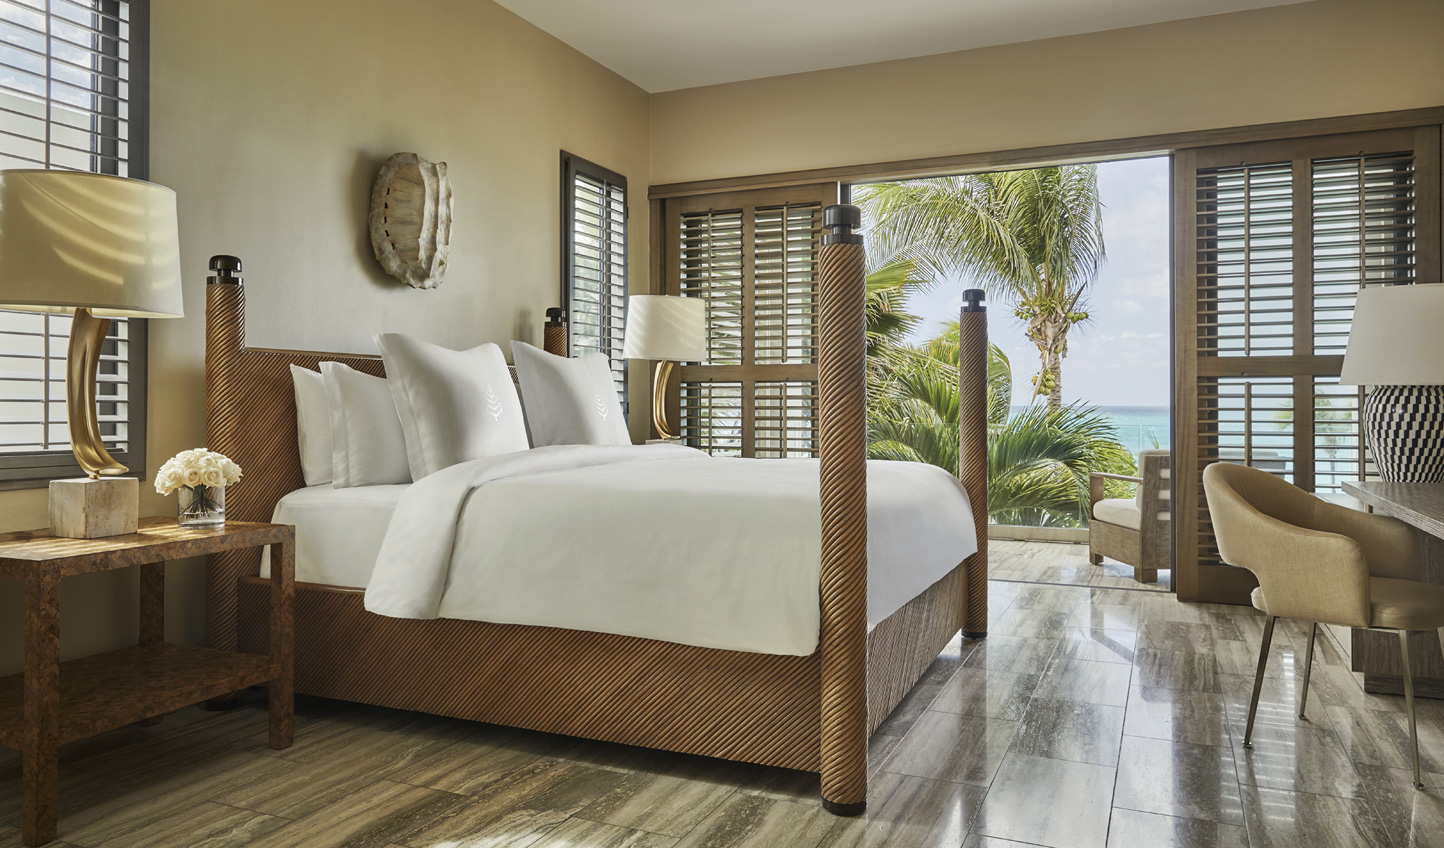 Gorgeous bedrooms overlooking the swaying palm trees